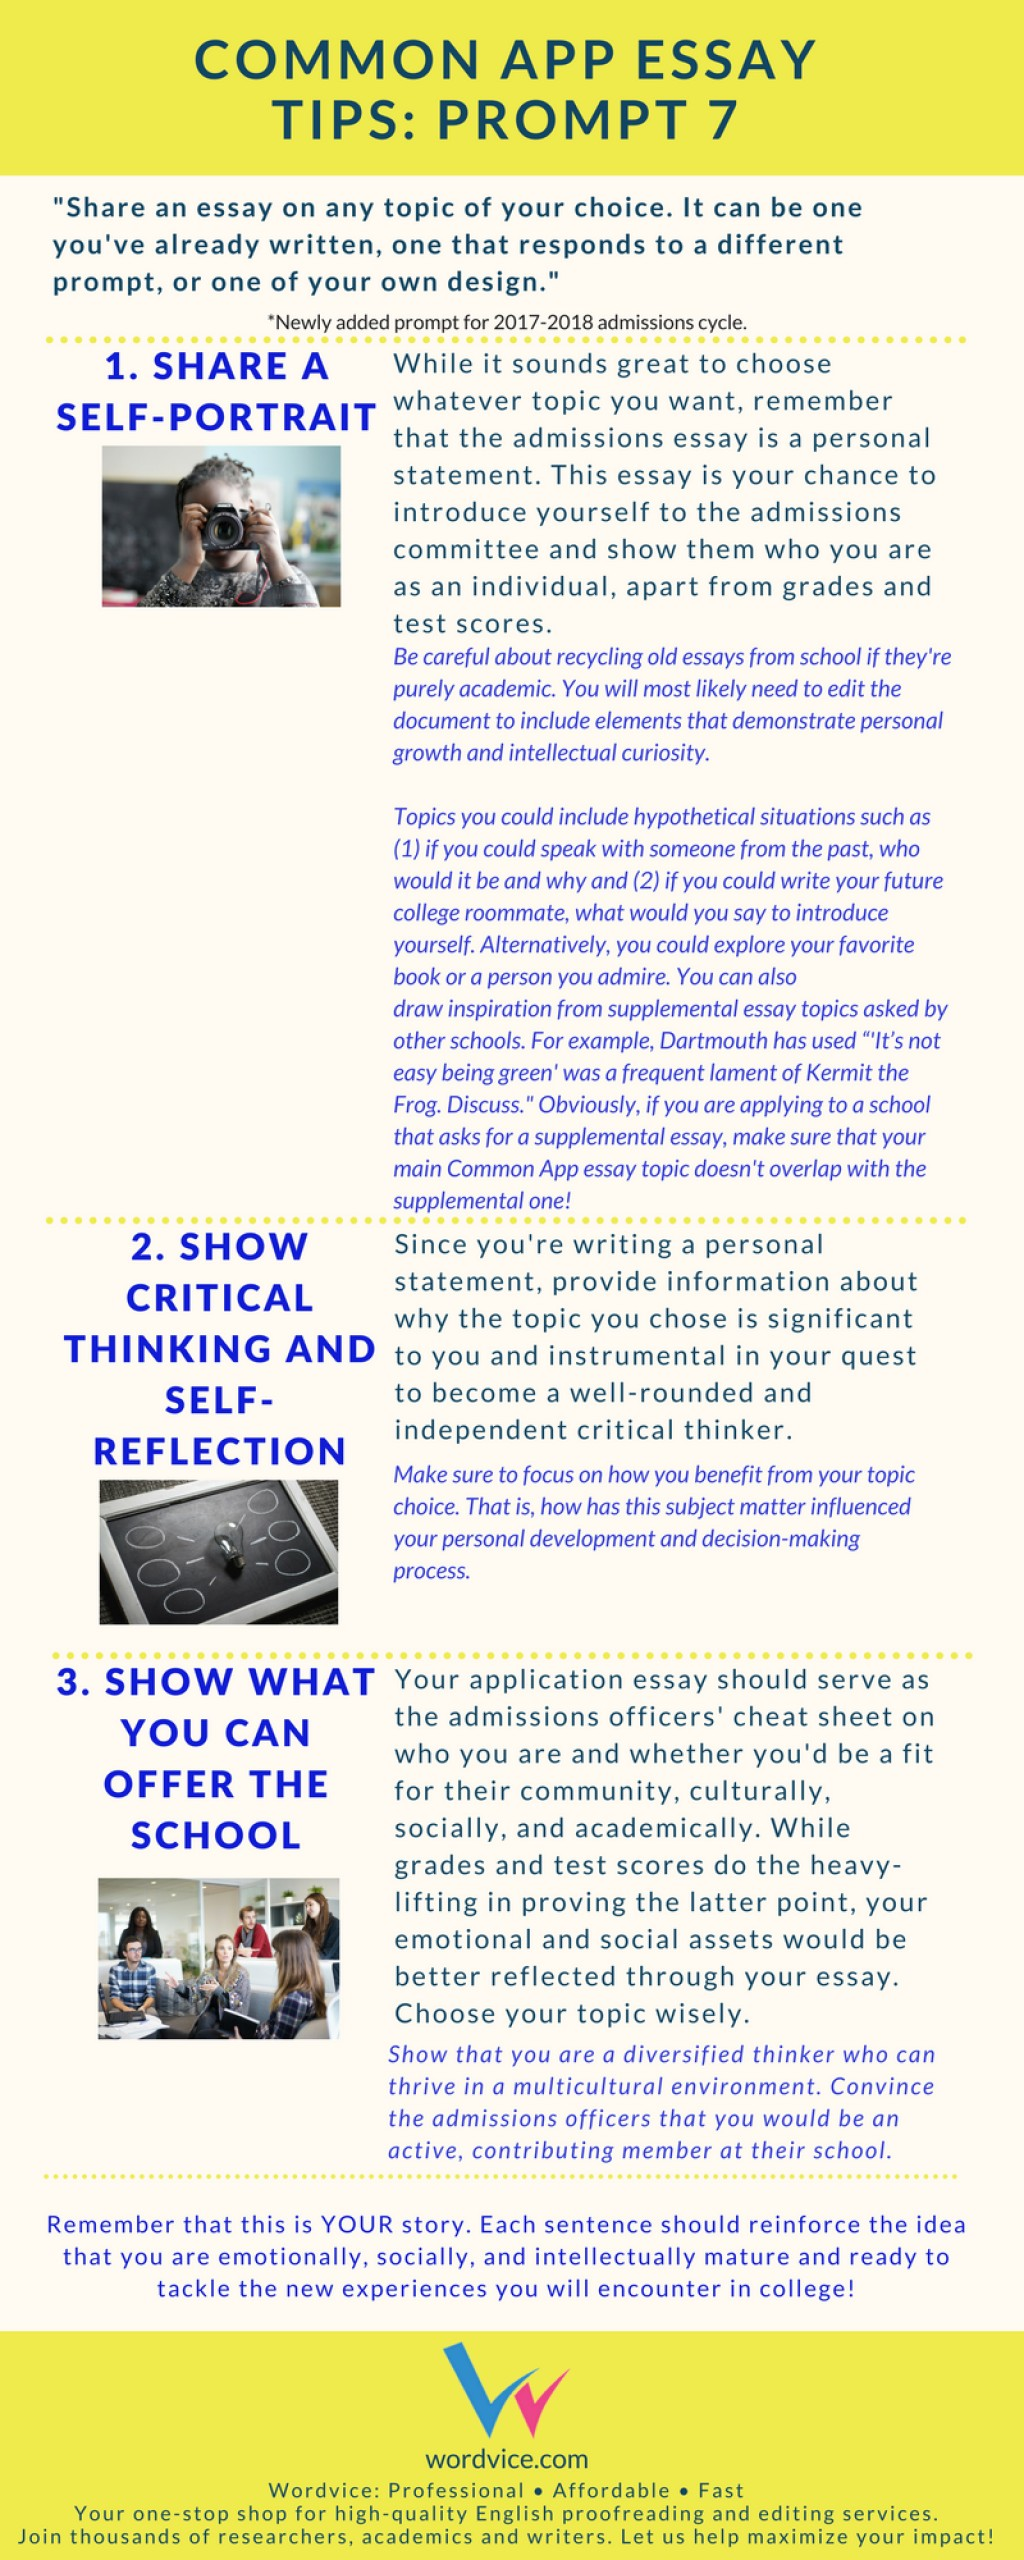 006 Common Application Essay Prompts App Brainstormprompt Imposing Word Limit 2020 Large